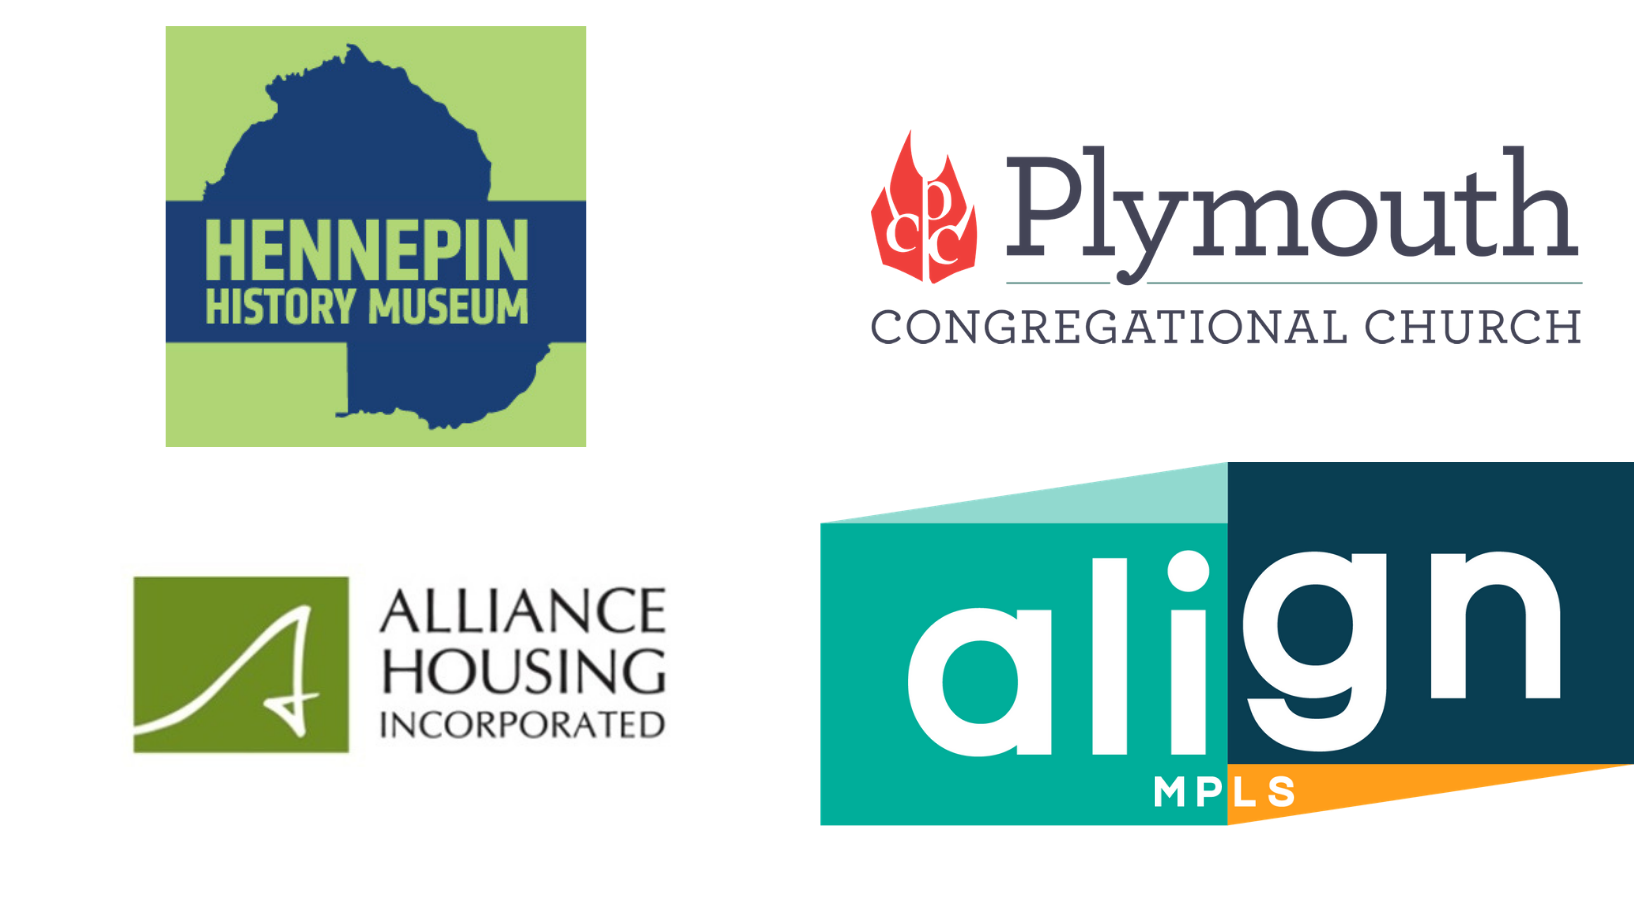 Logos for Alliance Housing, Plymouth Congregational Church, Align Mpls, and Hennepin History Musuem